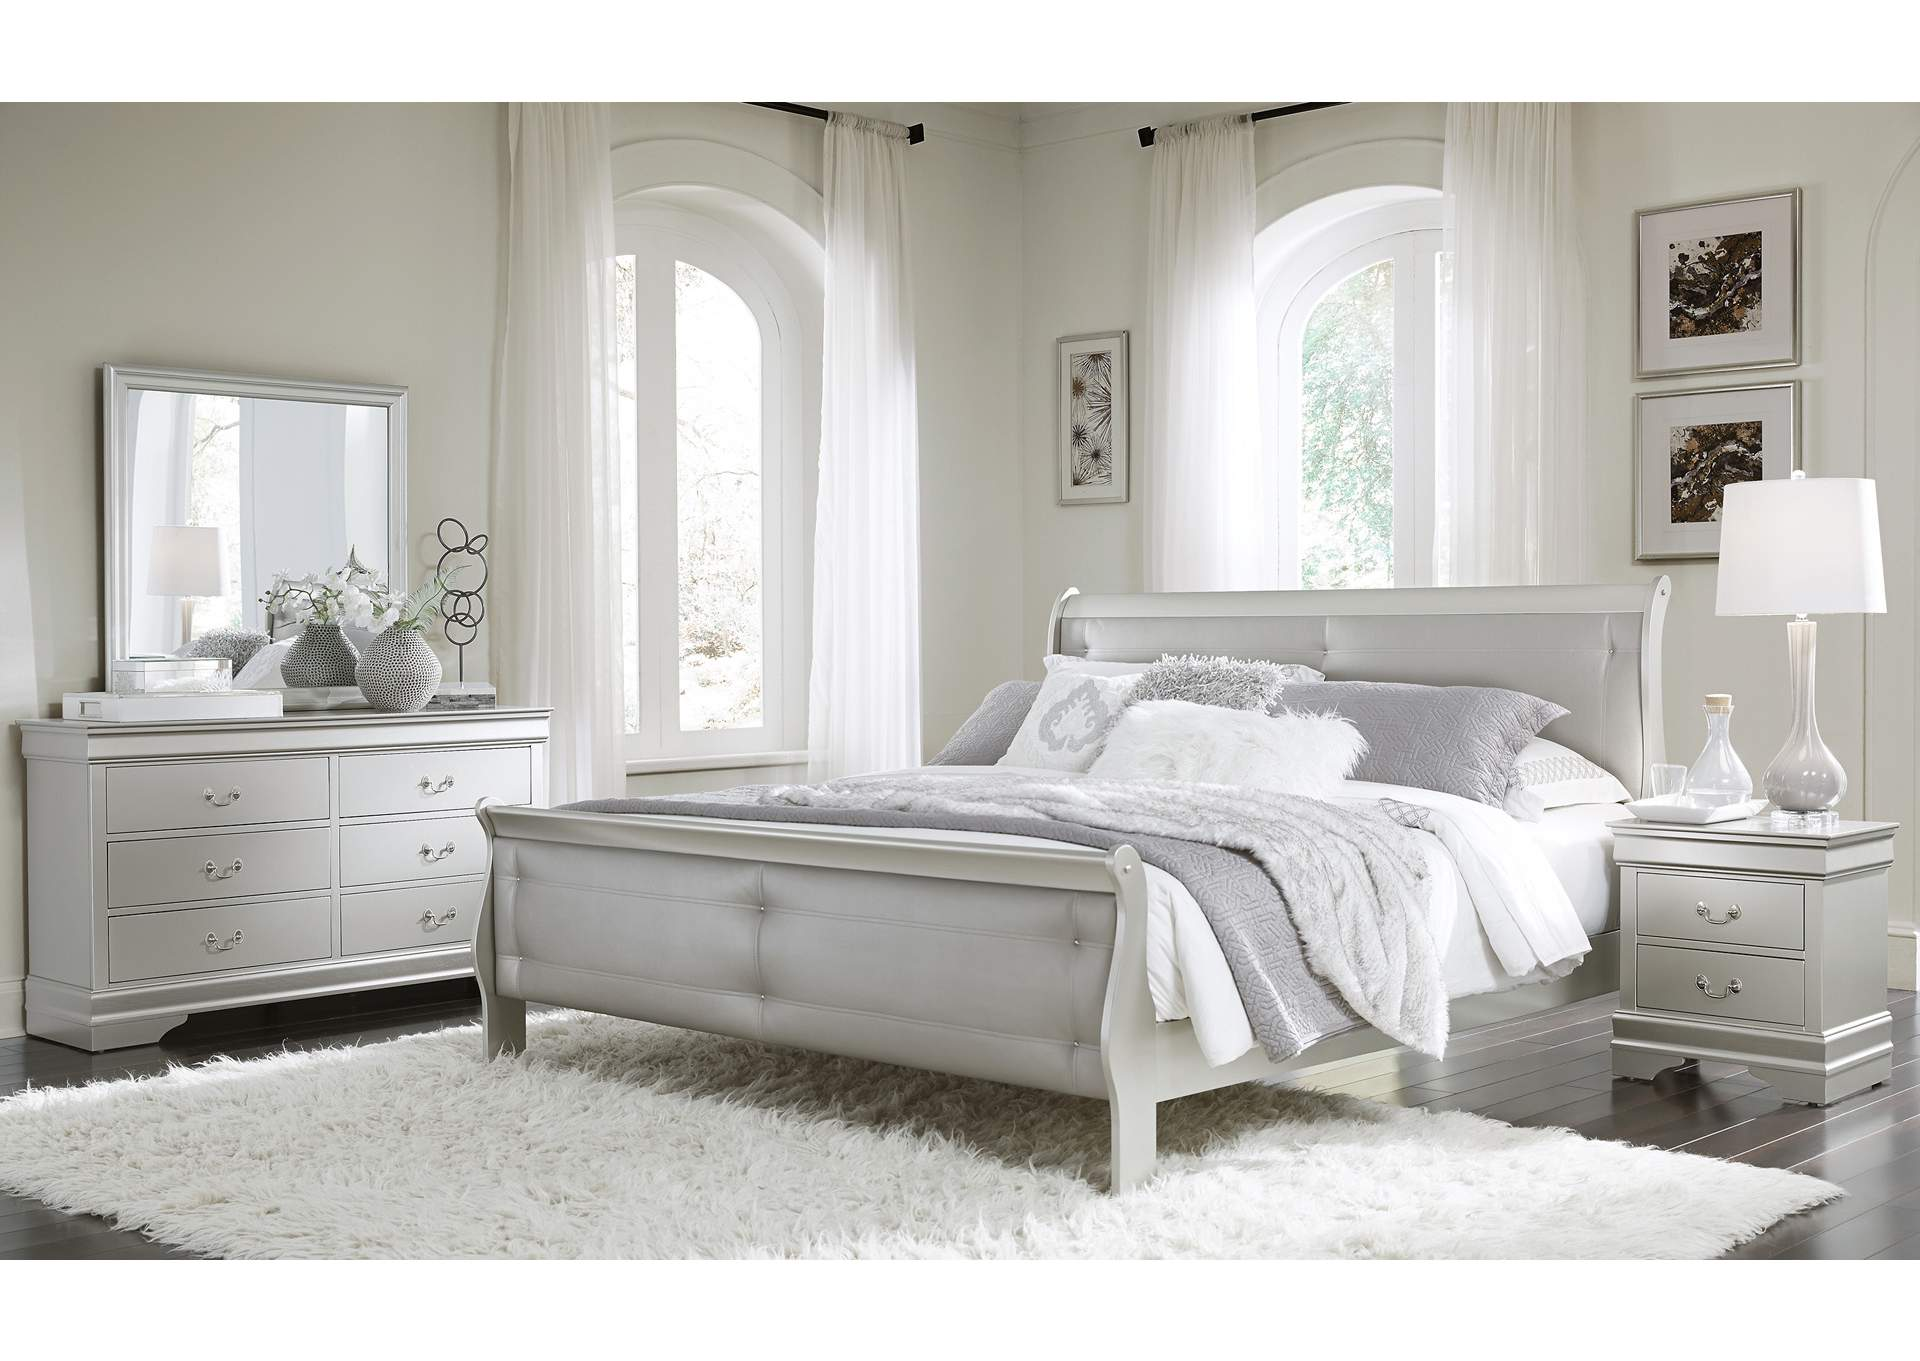 Marley Silver Queen Bed,Global Furniture USA